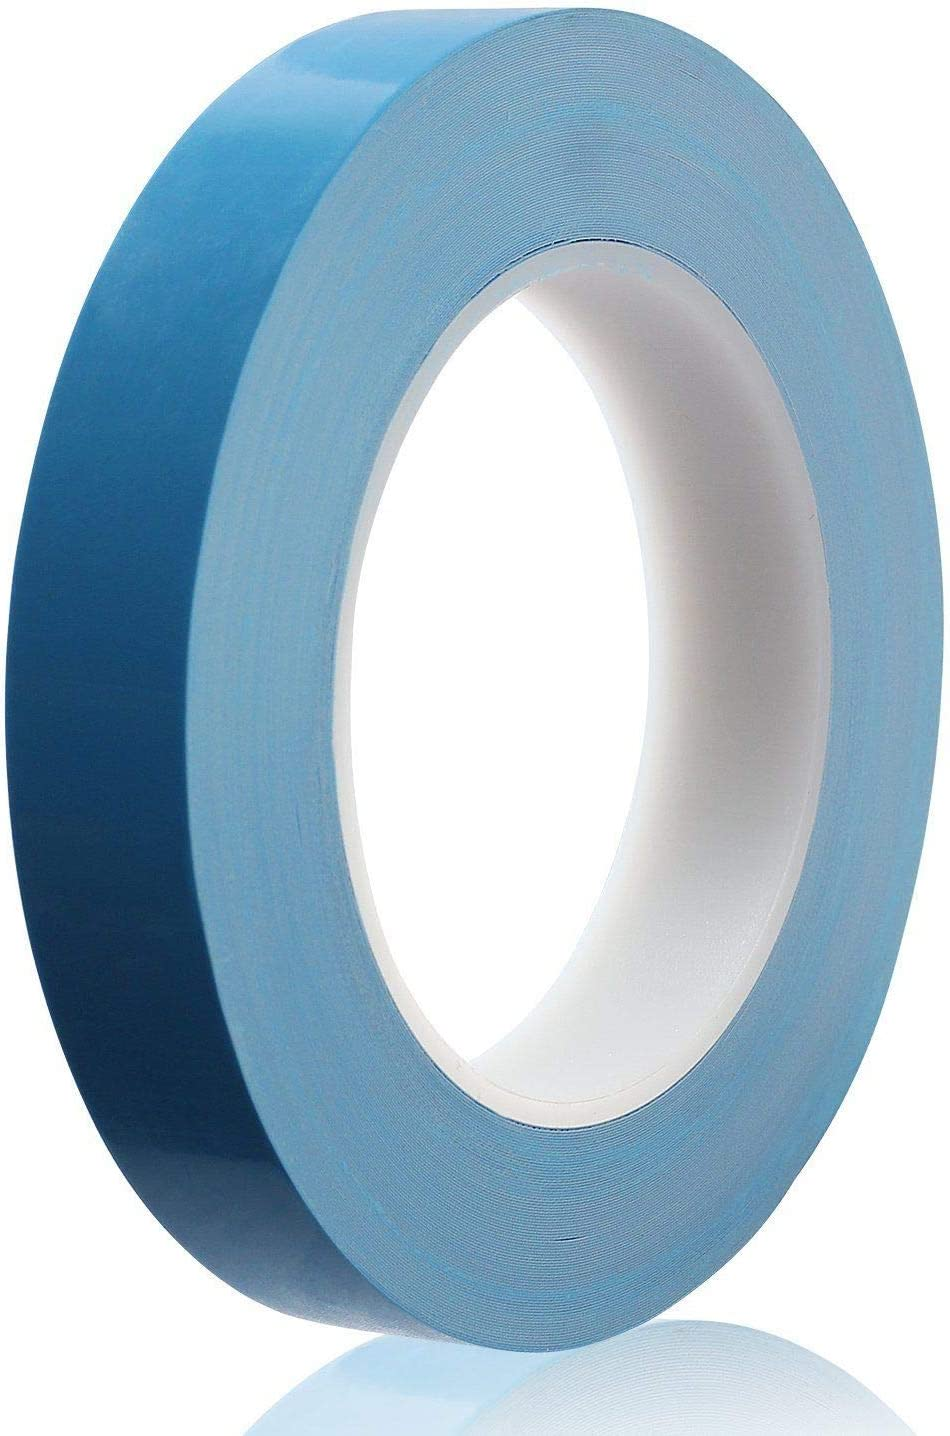 Atsani 15mm x 25M x 0.25mm Thermal Adhesive Tape,High Performance Thermal Double Side Tapes Cooling Pad Apply to Heatsink,LED,IGBT MOS Tube,SSD Drives IC Chip,Computer CPU,GPU,Modules